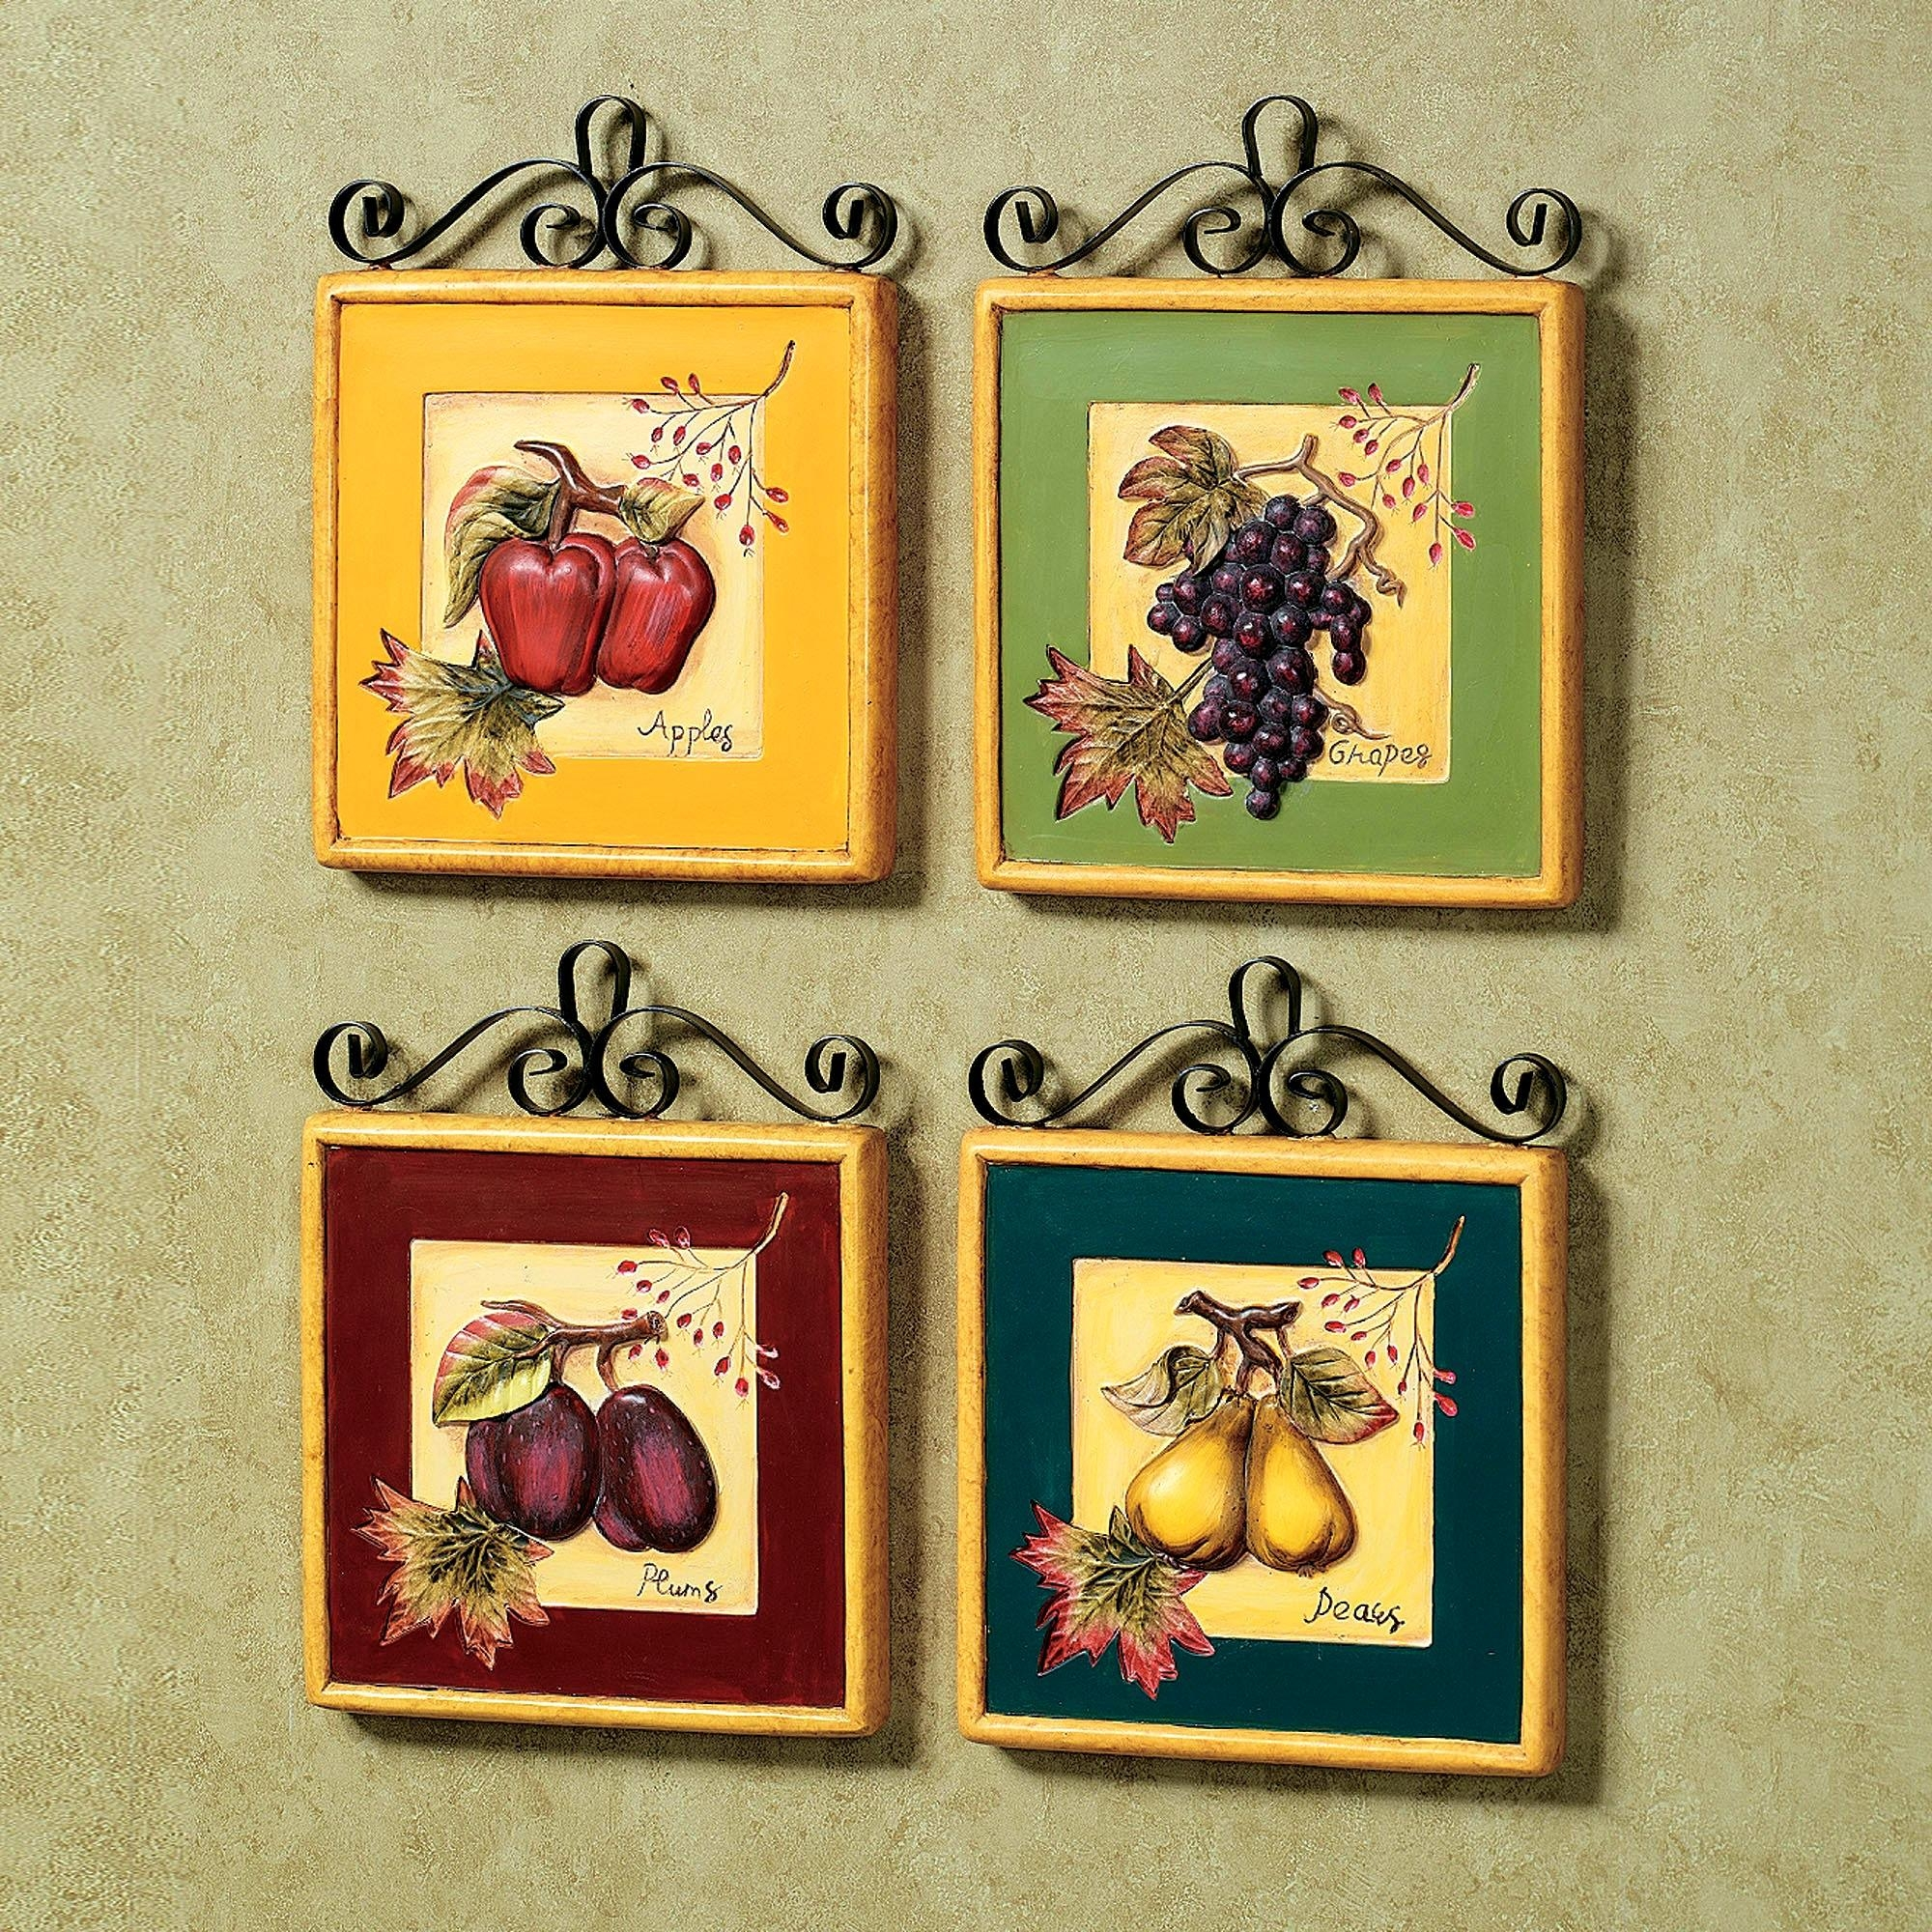 Furniture : Fascinating Fat Italian Chef Kitchen Wall Decor Regarding Italian Coffee Wall Art (View 12 of 20)